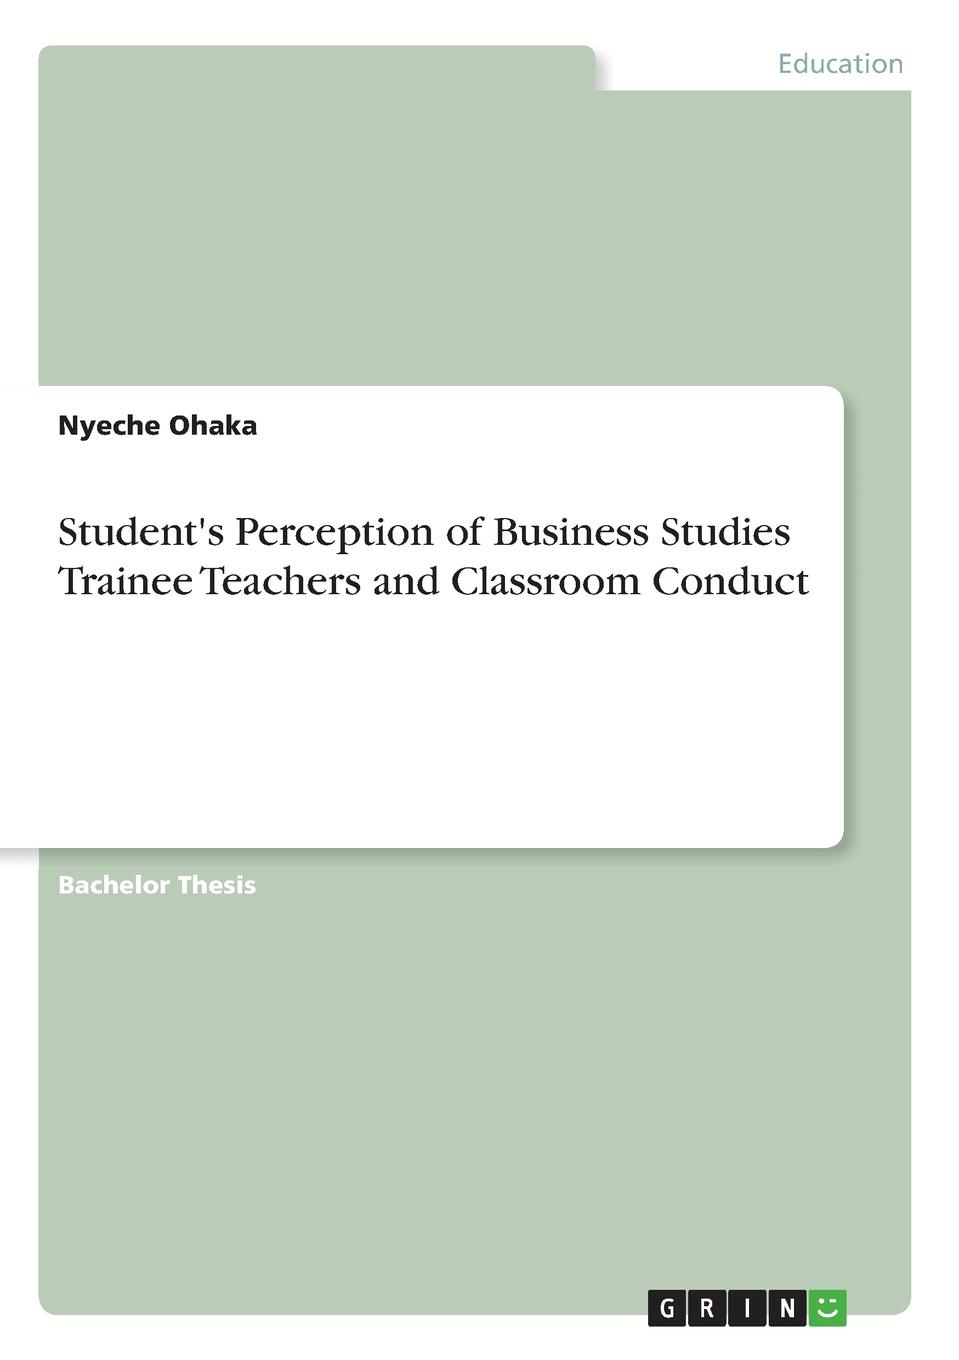 Nyeche Ohaka Student.s Perception of Business Studies Trainee Teachers and Classroom Conduct teachers perception of the influence of students indiscipline